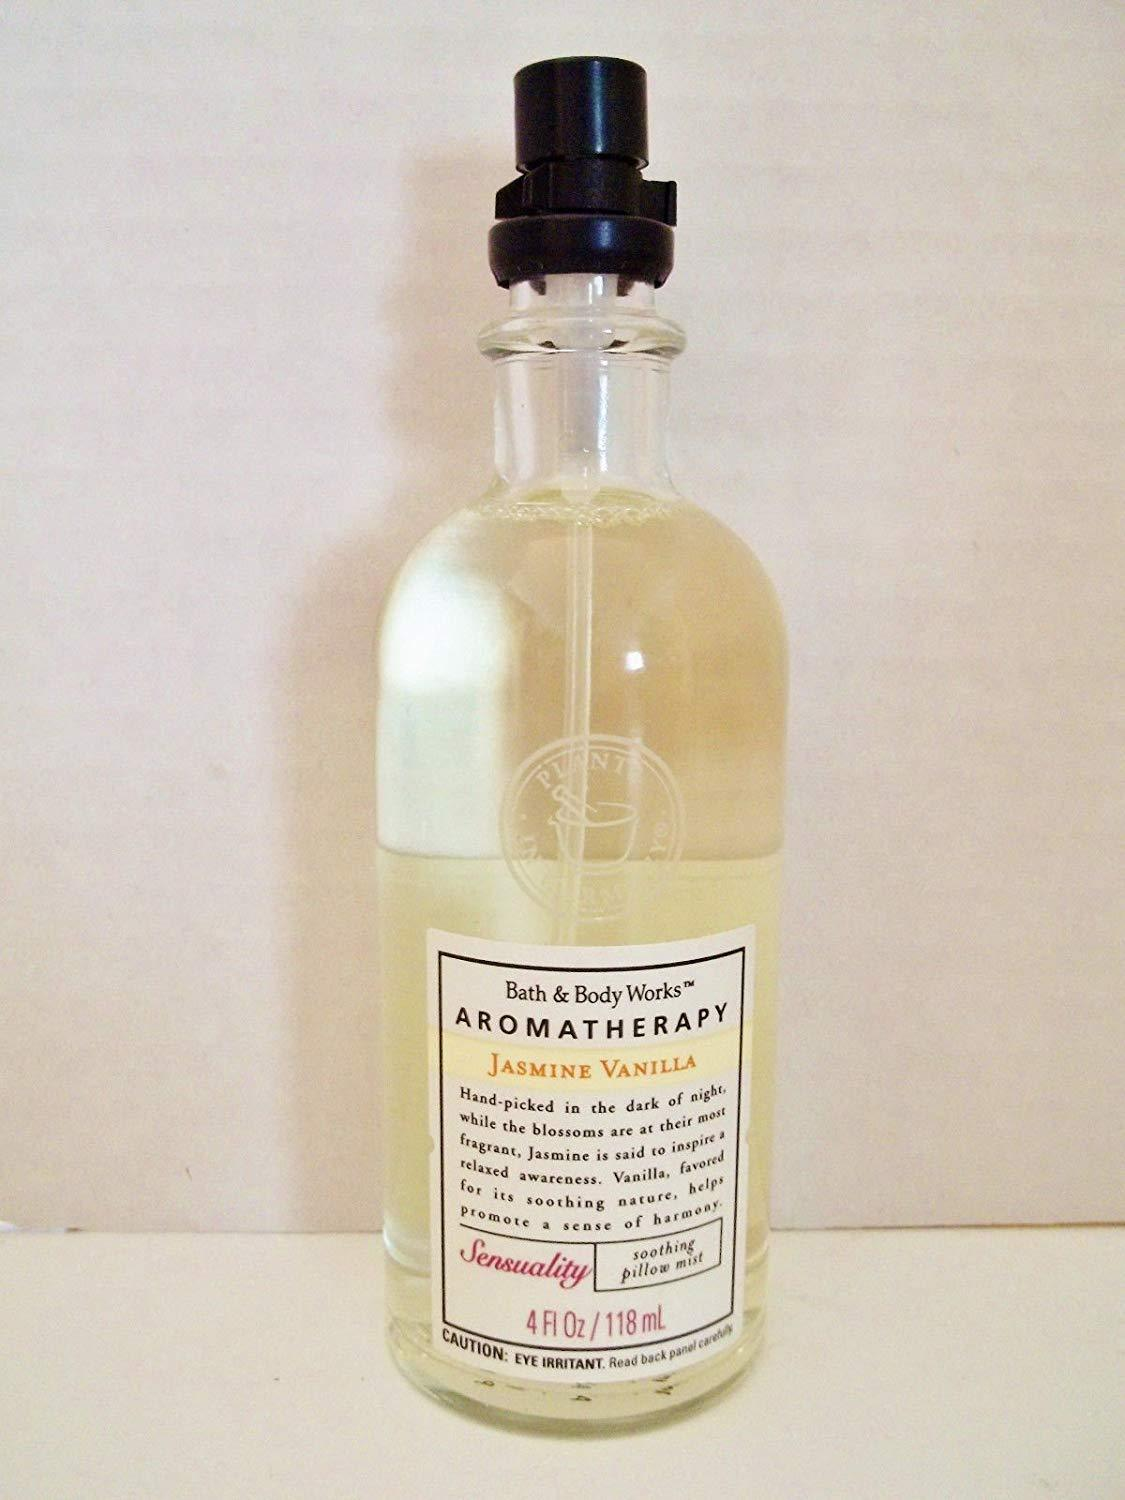 Primary image for Bath & Body Works Aromatherapy Jasmine Vanilla Soothing Pillow Mist